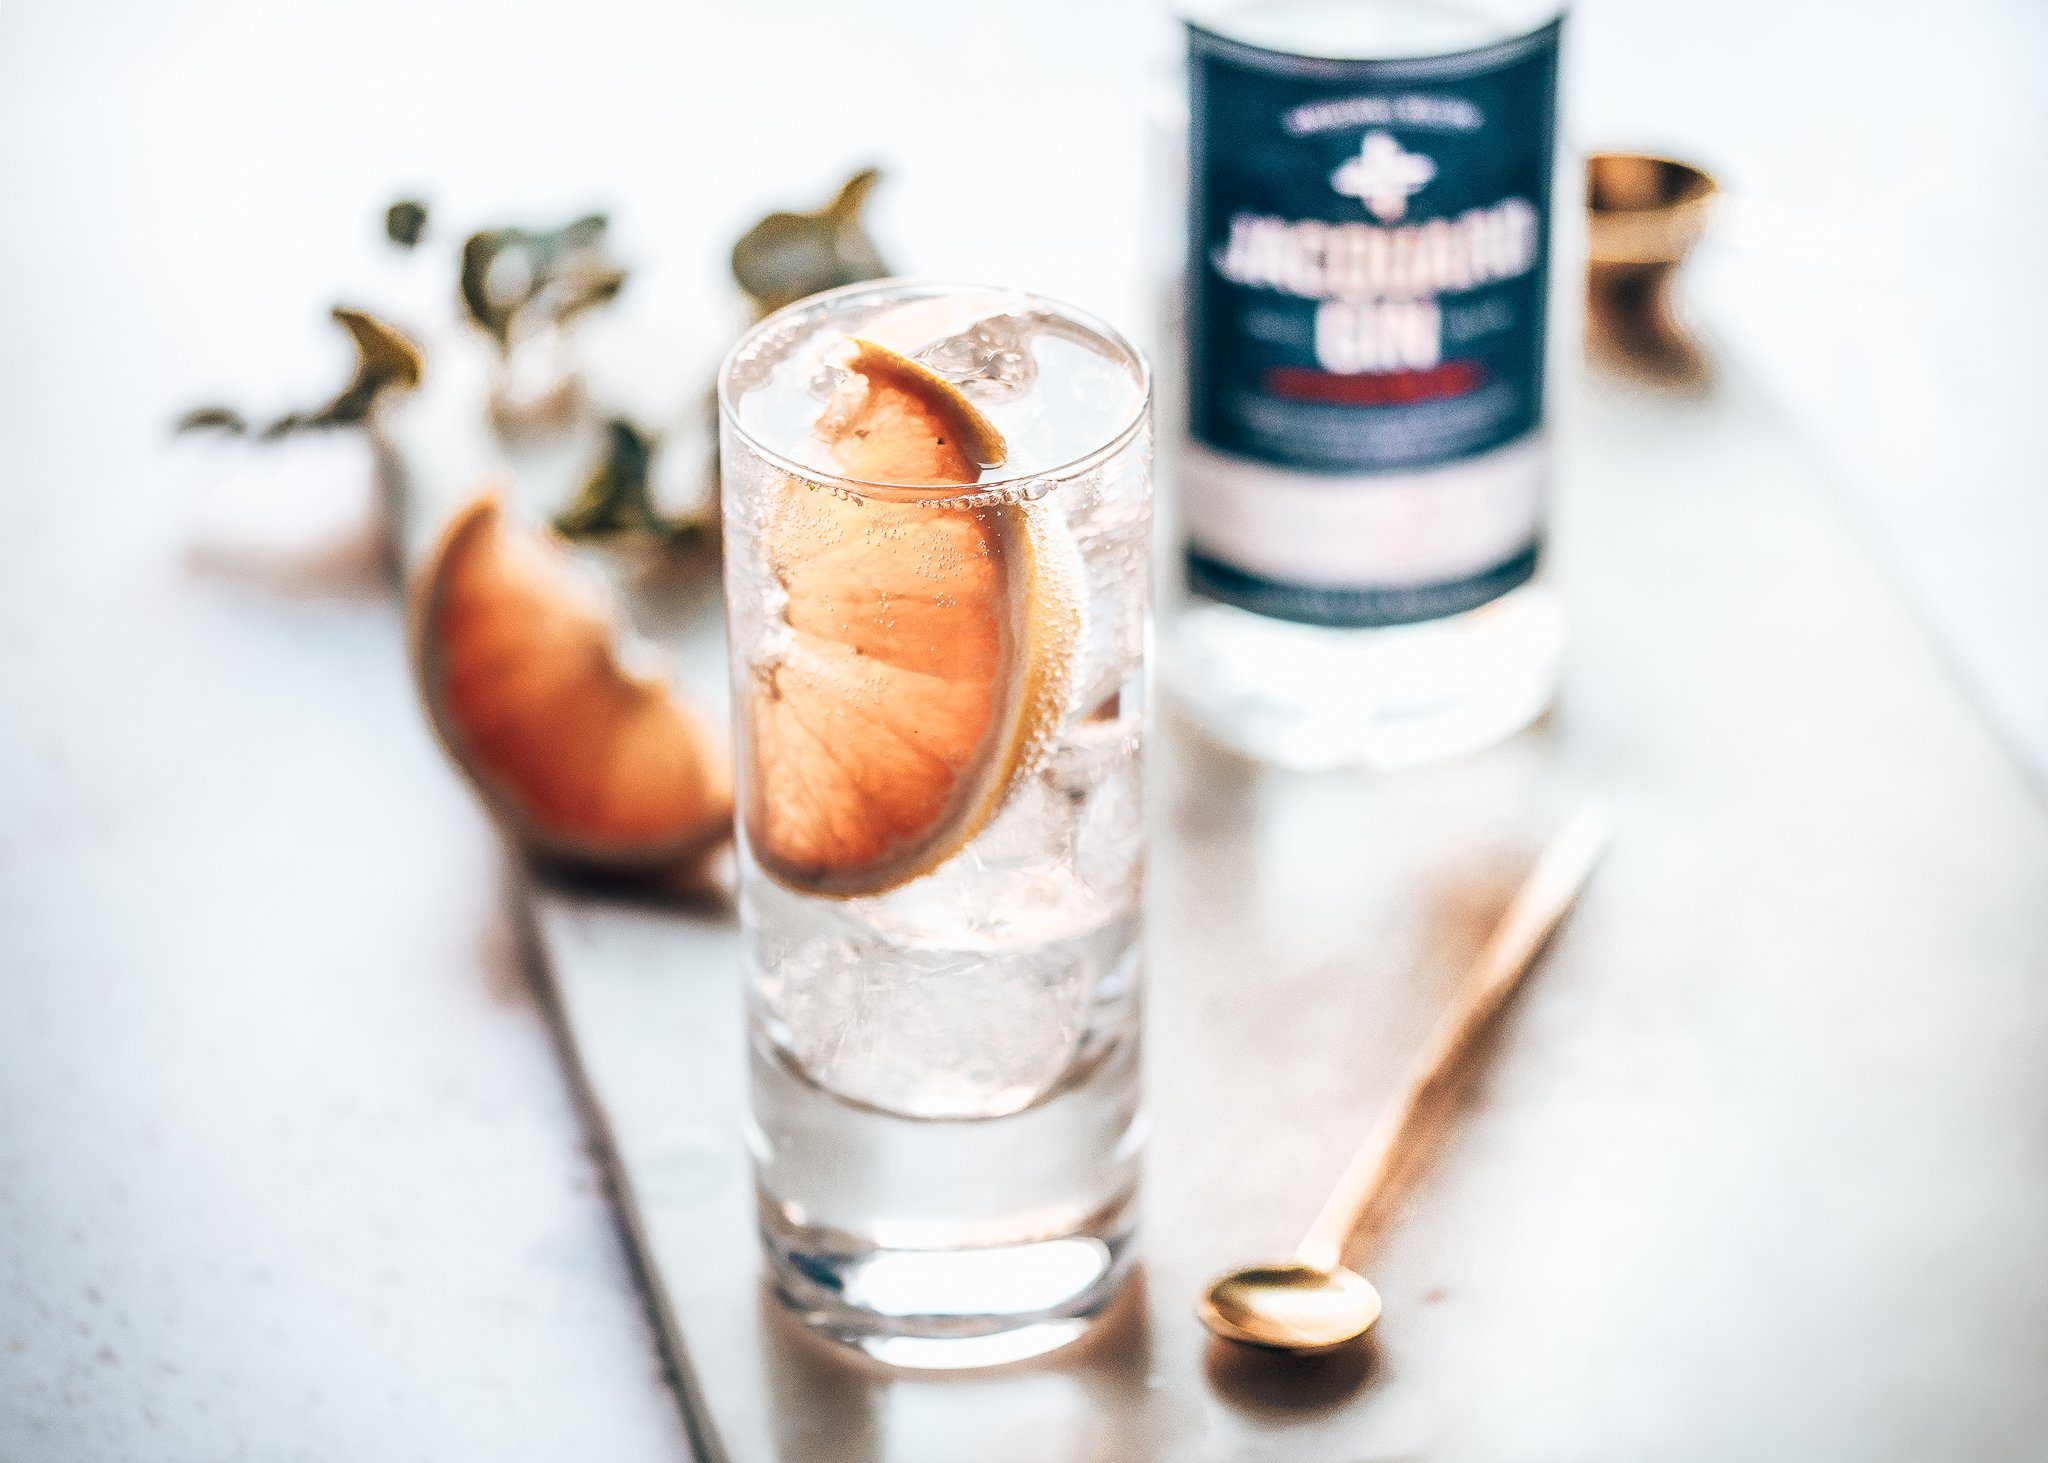 Jacquard Gin perfect serve, Strawhill Estate Distillery, Alles over gin.